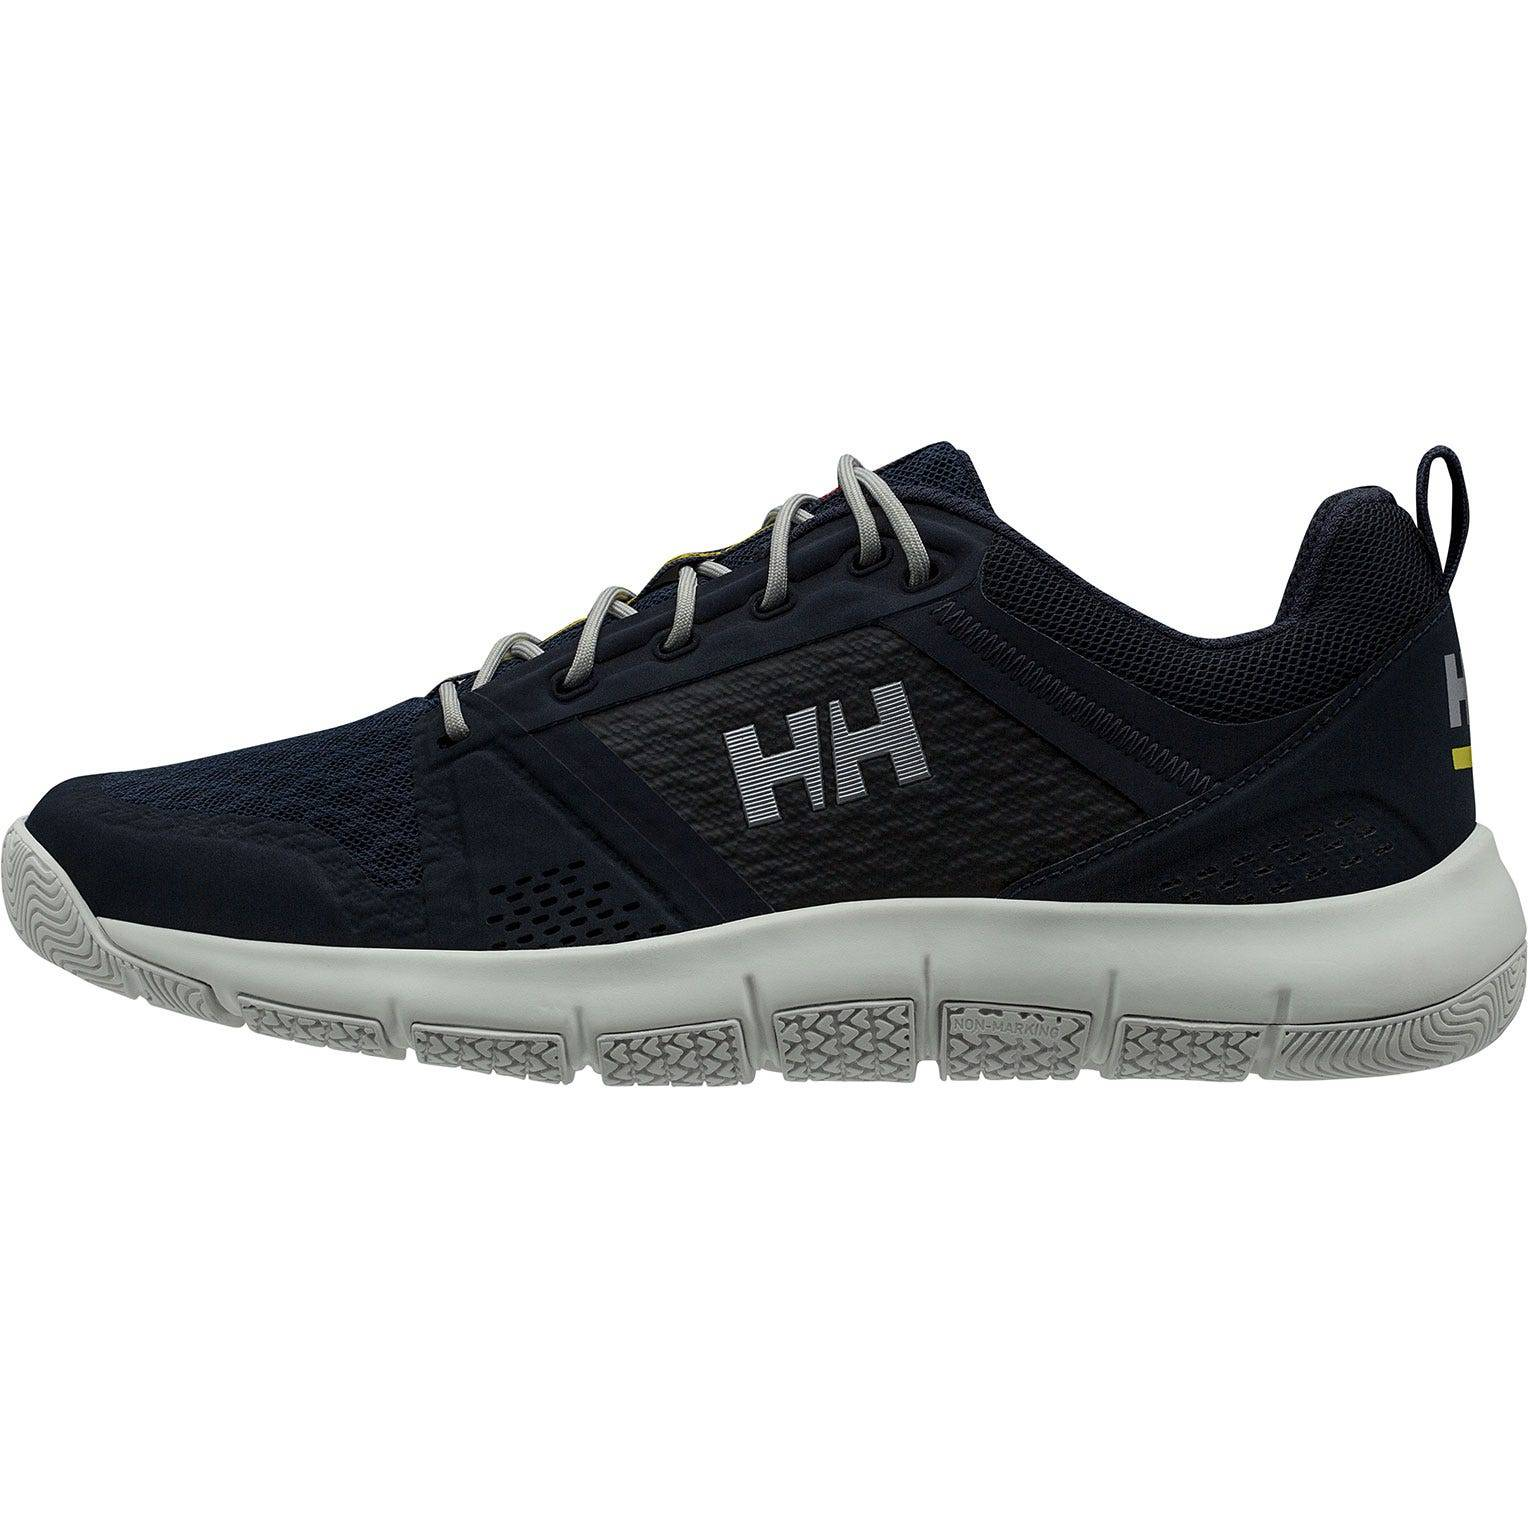 Helly Hansen W Skagen F1 Offshore Womens Sailing Shoe Navy 39.3/8